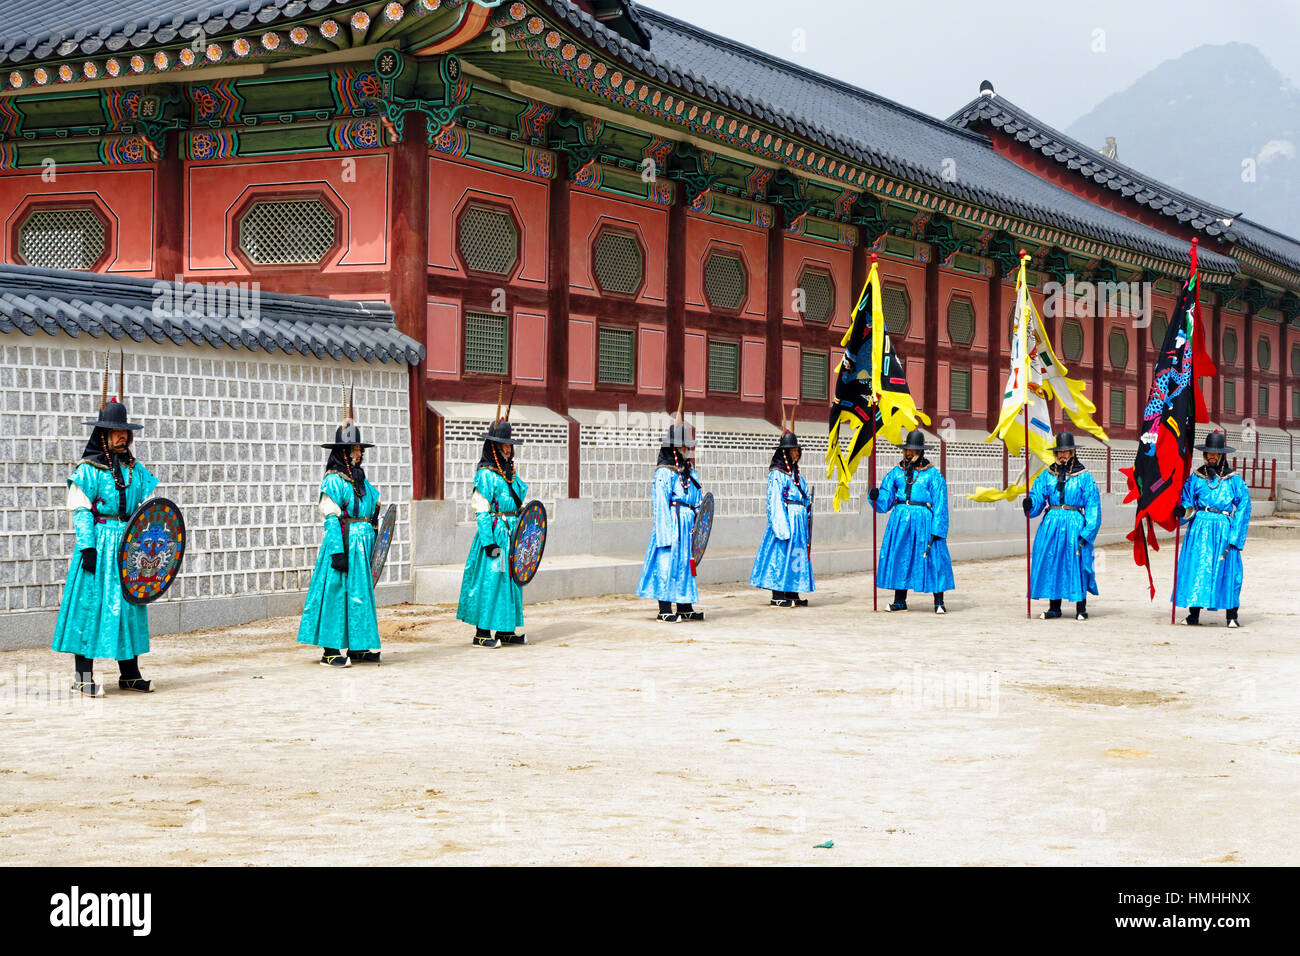 Changing of the  Guards Ceremony, Gyeongbokgung Palace, Seoul, South Korea - Stock Image